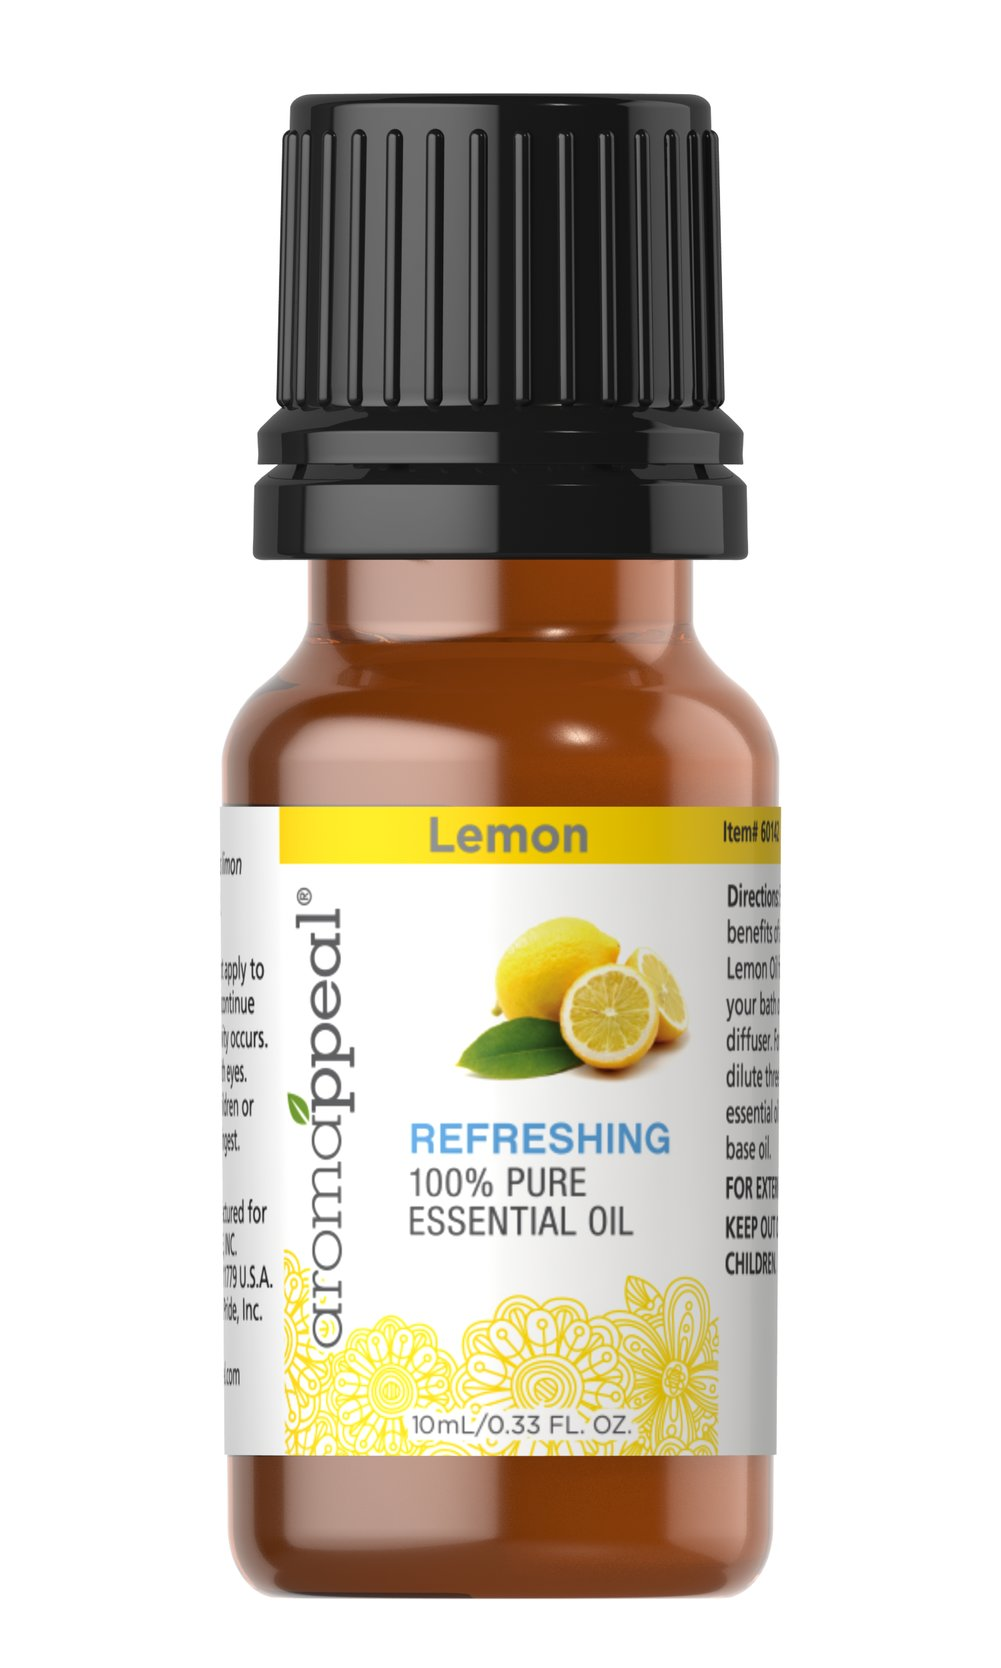 Lemon 100% Pure Essential Oil  10 ml Oil  $10.79